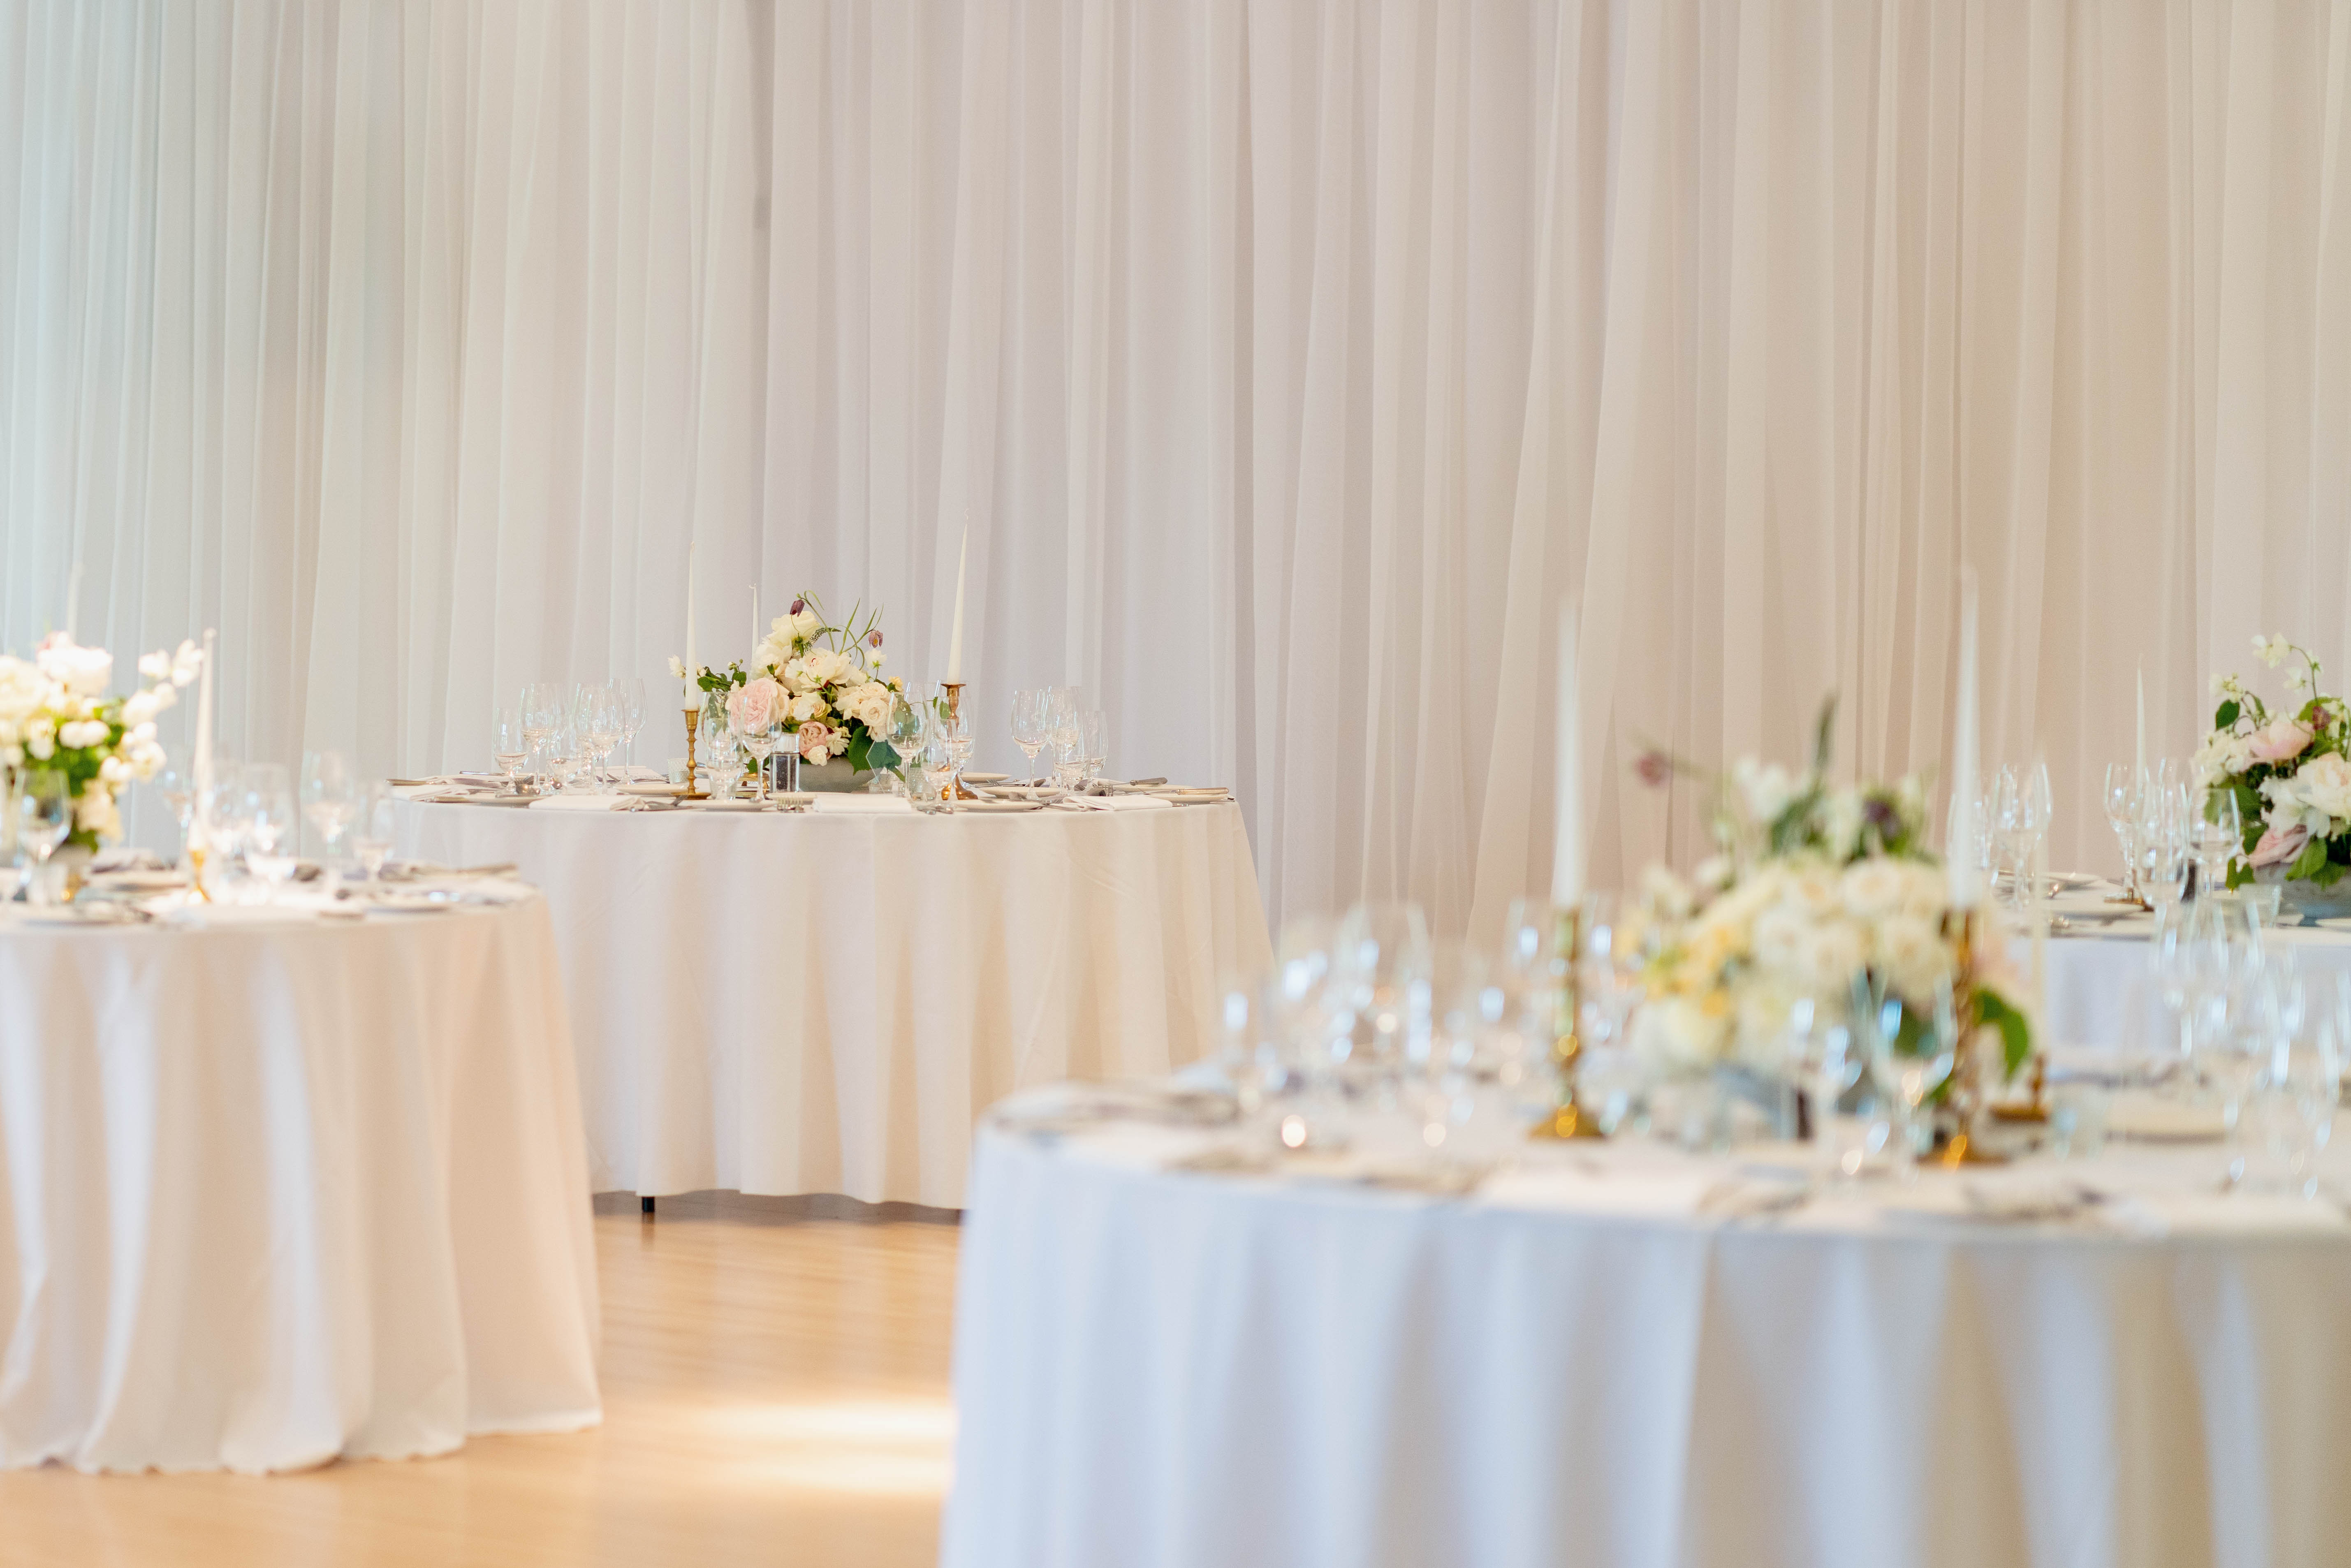 Wedding Tables With Flower Arrangements from Blooming Haus - Wedding Florist London